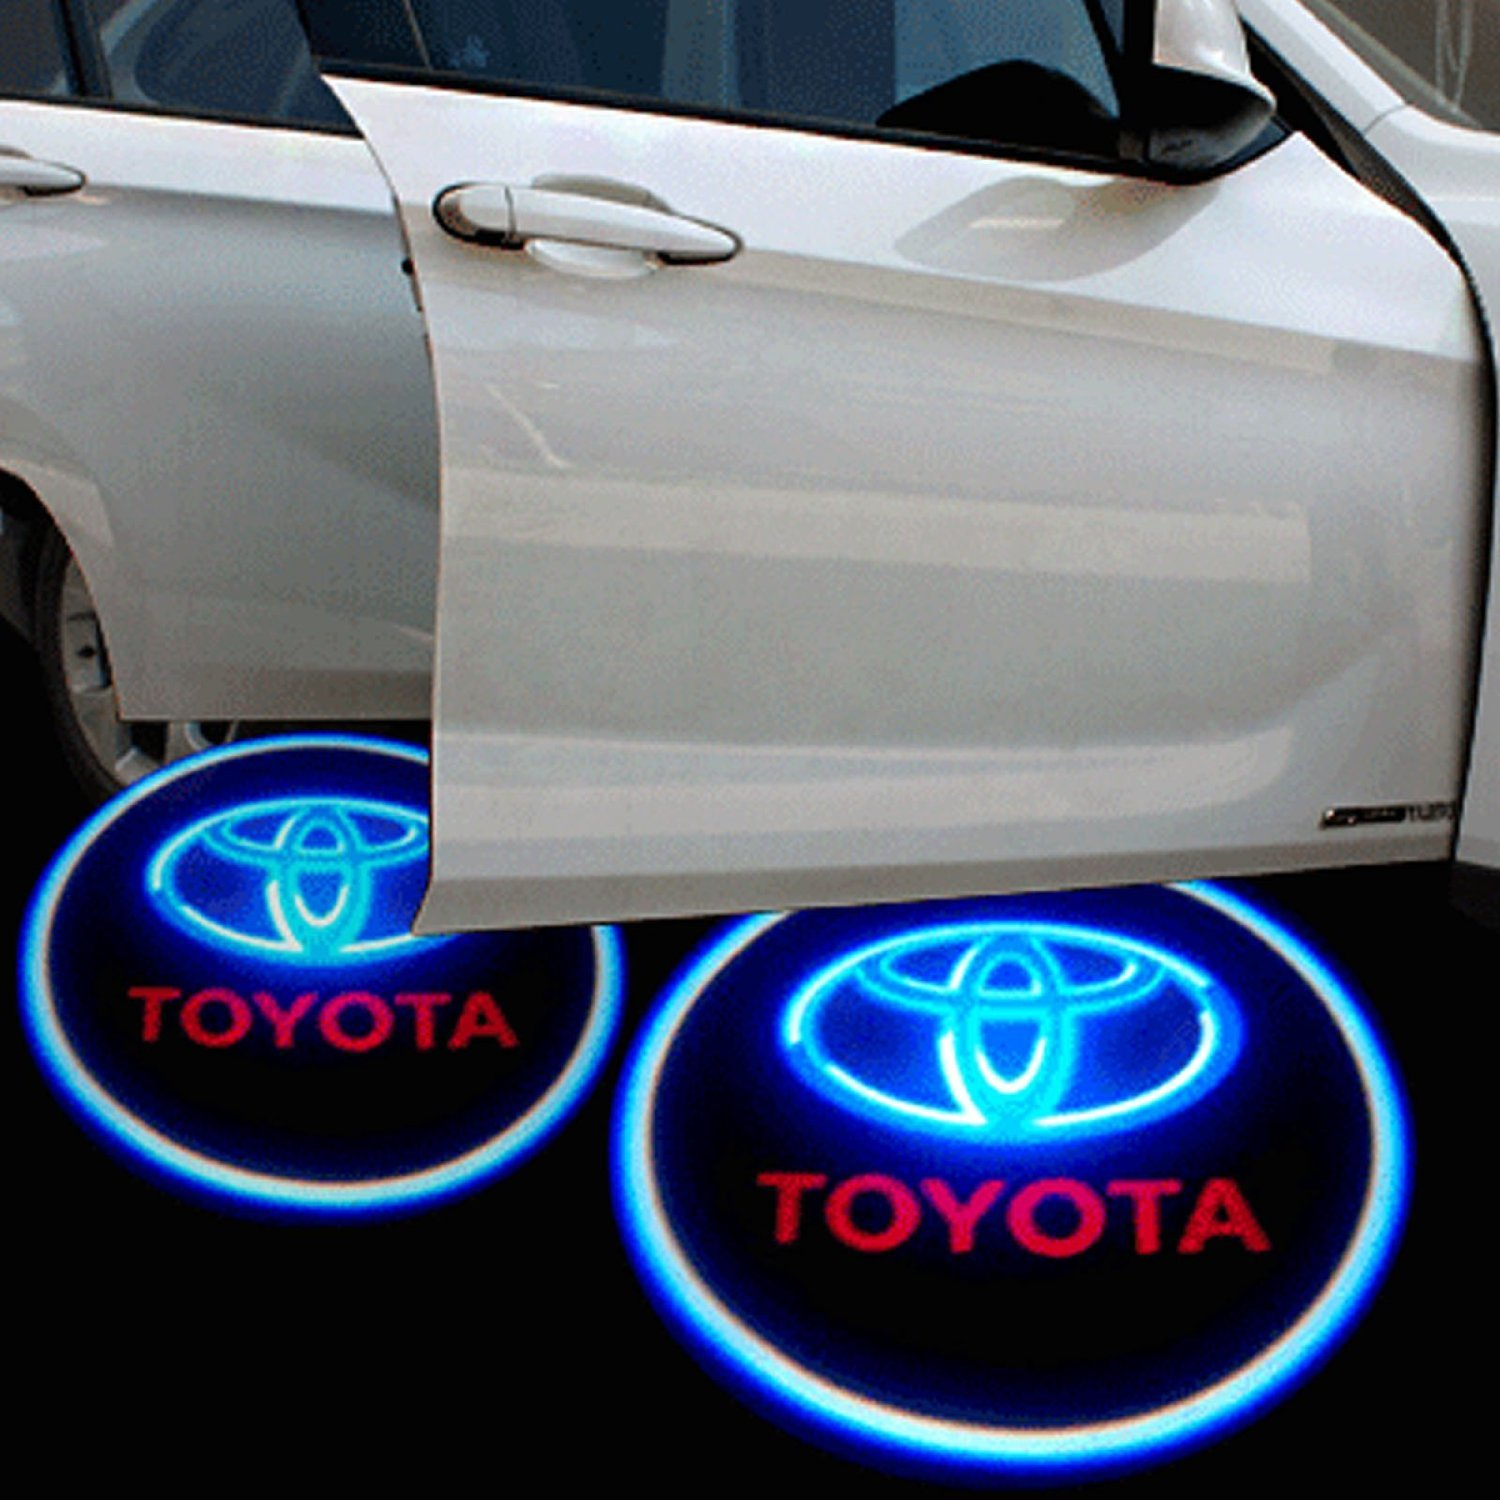 Amazon.com Soondar® 2 pcs Universal Wireless Car Projection LED Projector Door Shadow Light Welcome Light Laser Emblem Logo L&s Kit No Drilling (Toyota) ... & Amazon.com: Soondar® 2 pcs Universal Wireless Car Projection LED ...